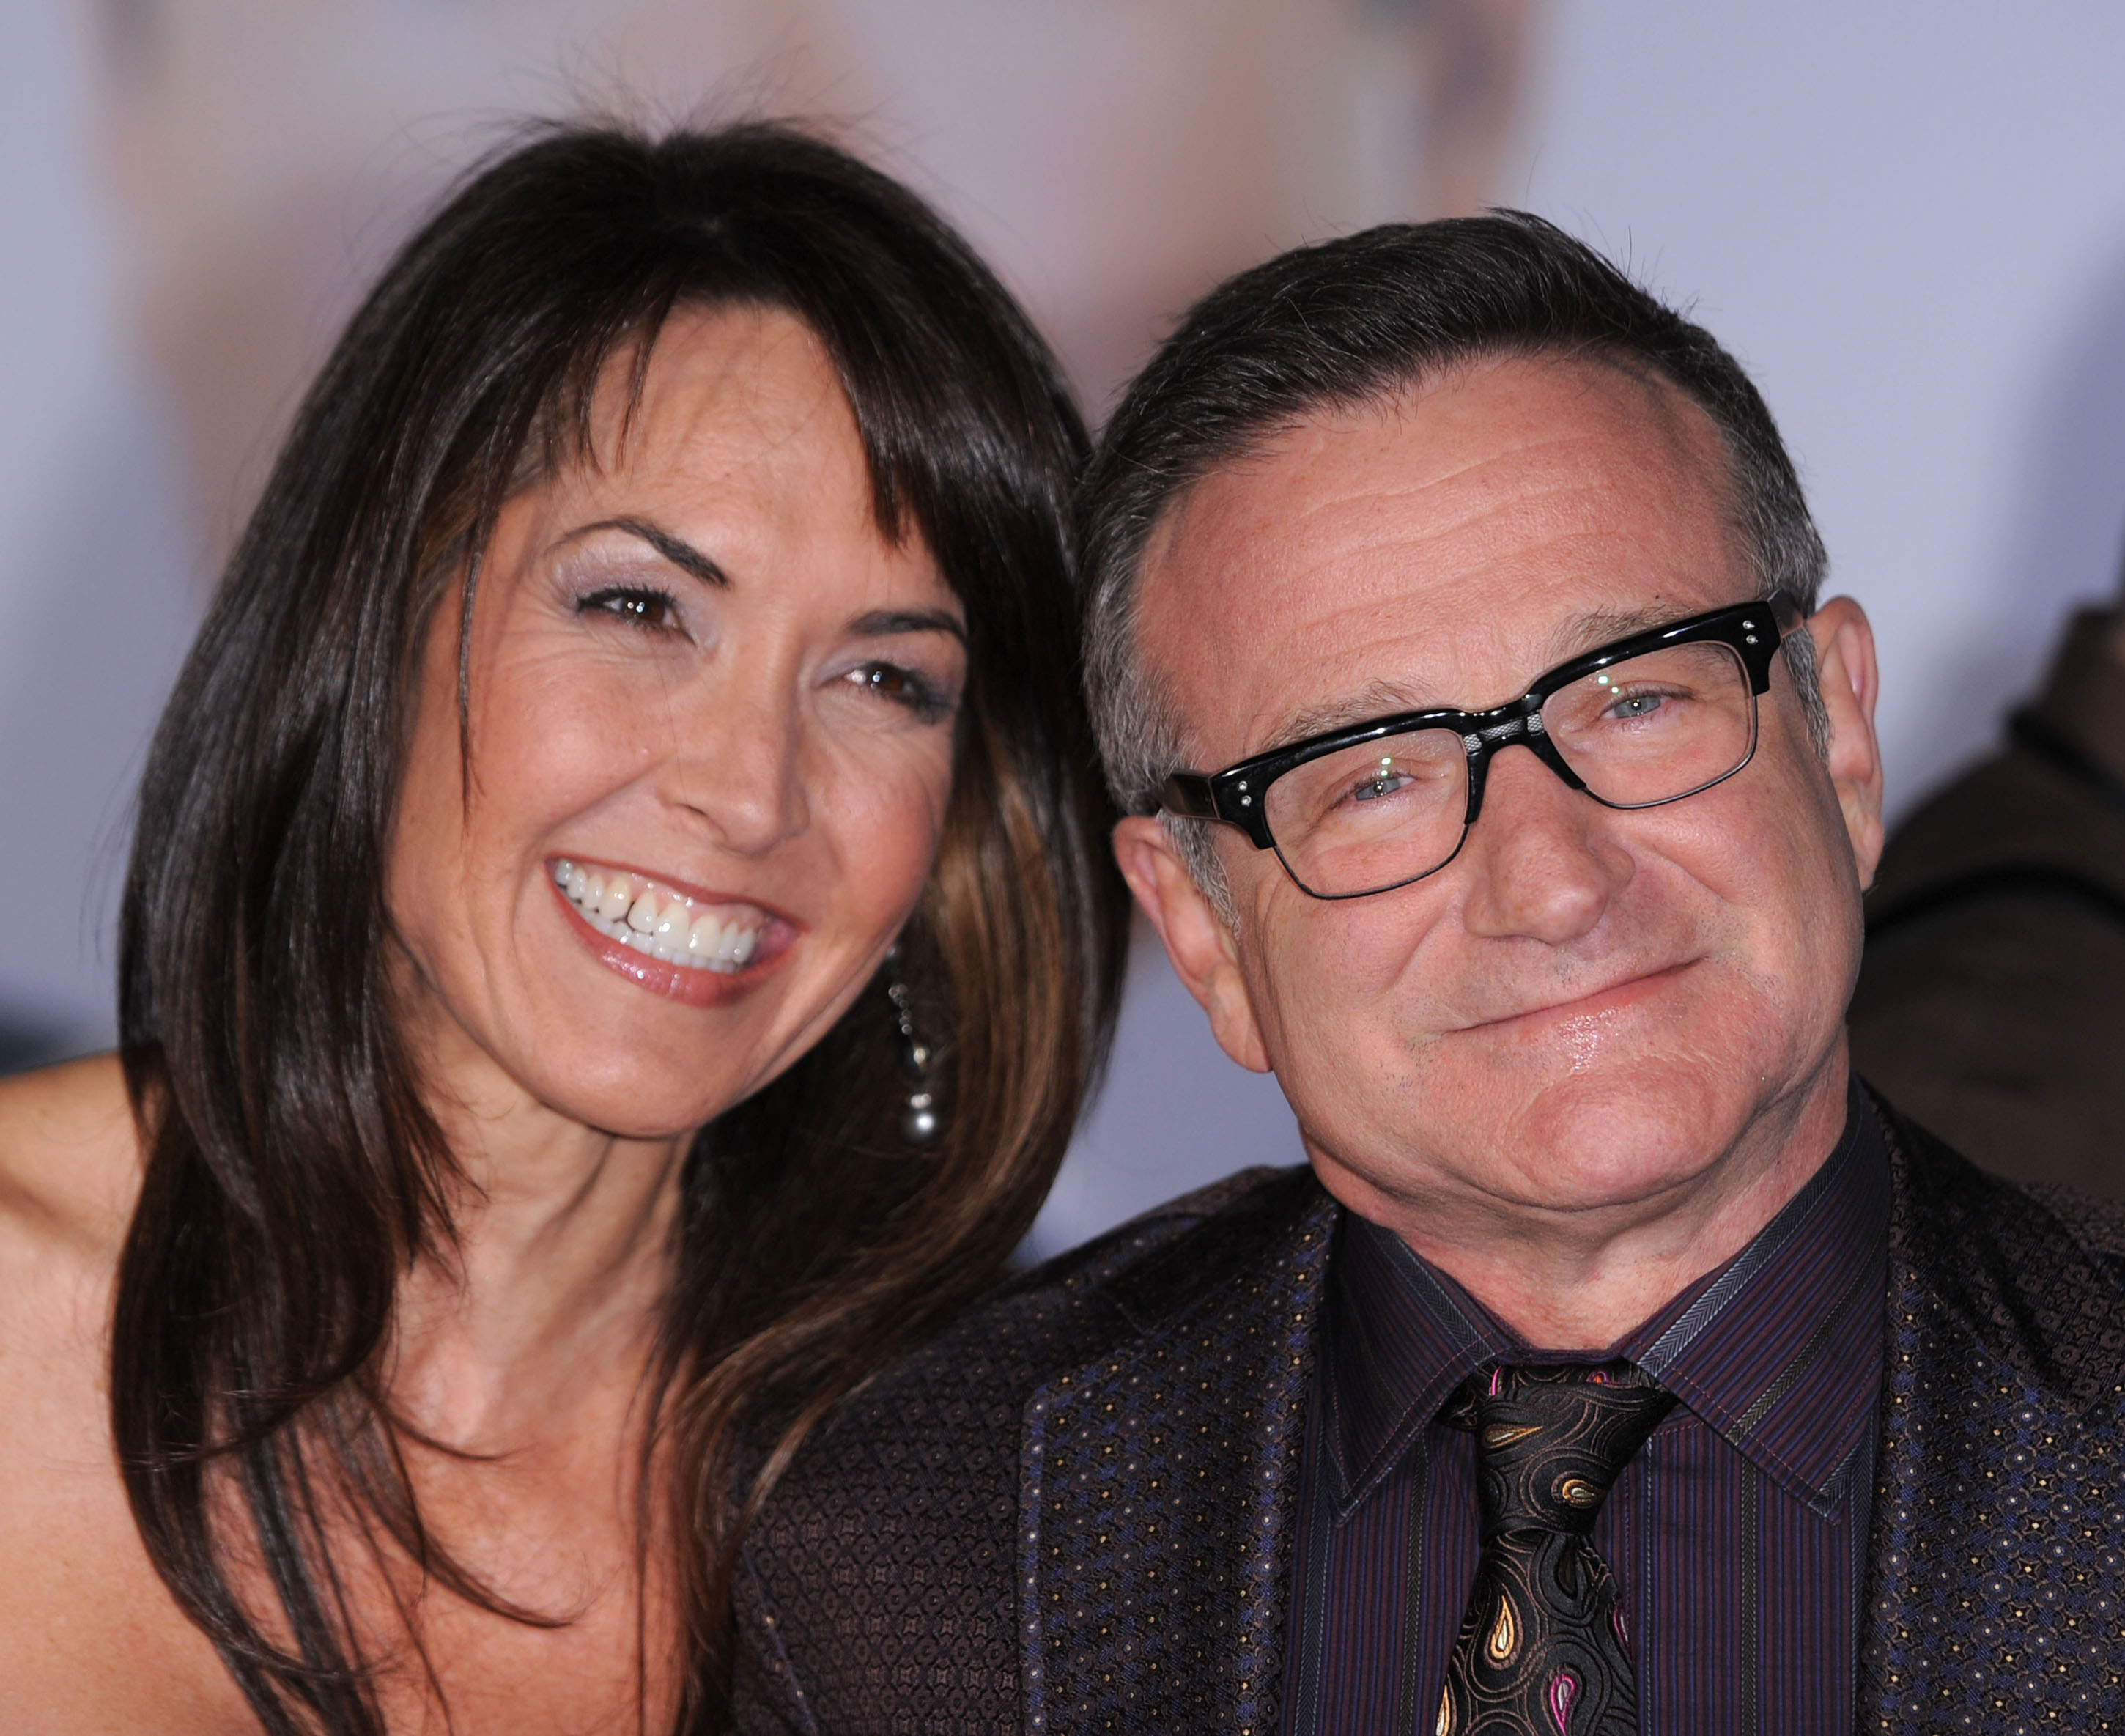 Robin Williams was 'losing his mind and was aware of it': Widow pens emotional essay about actor's decline